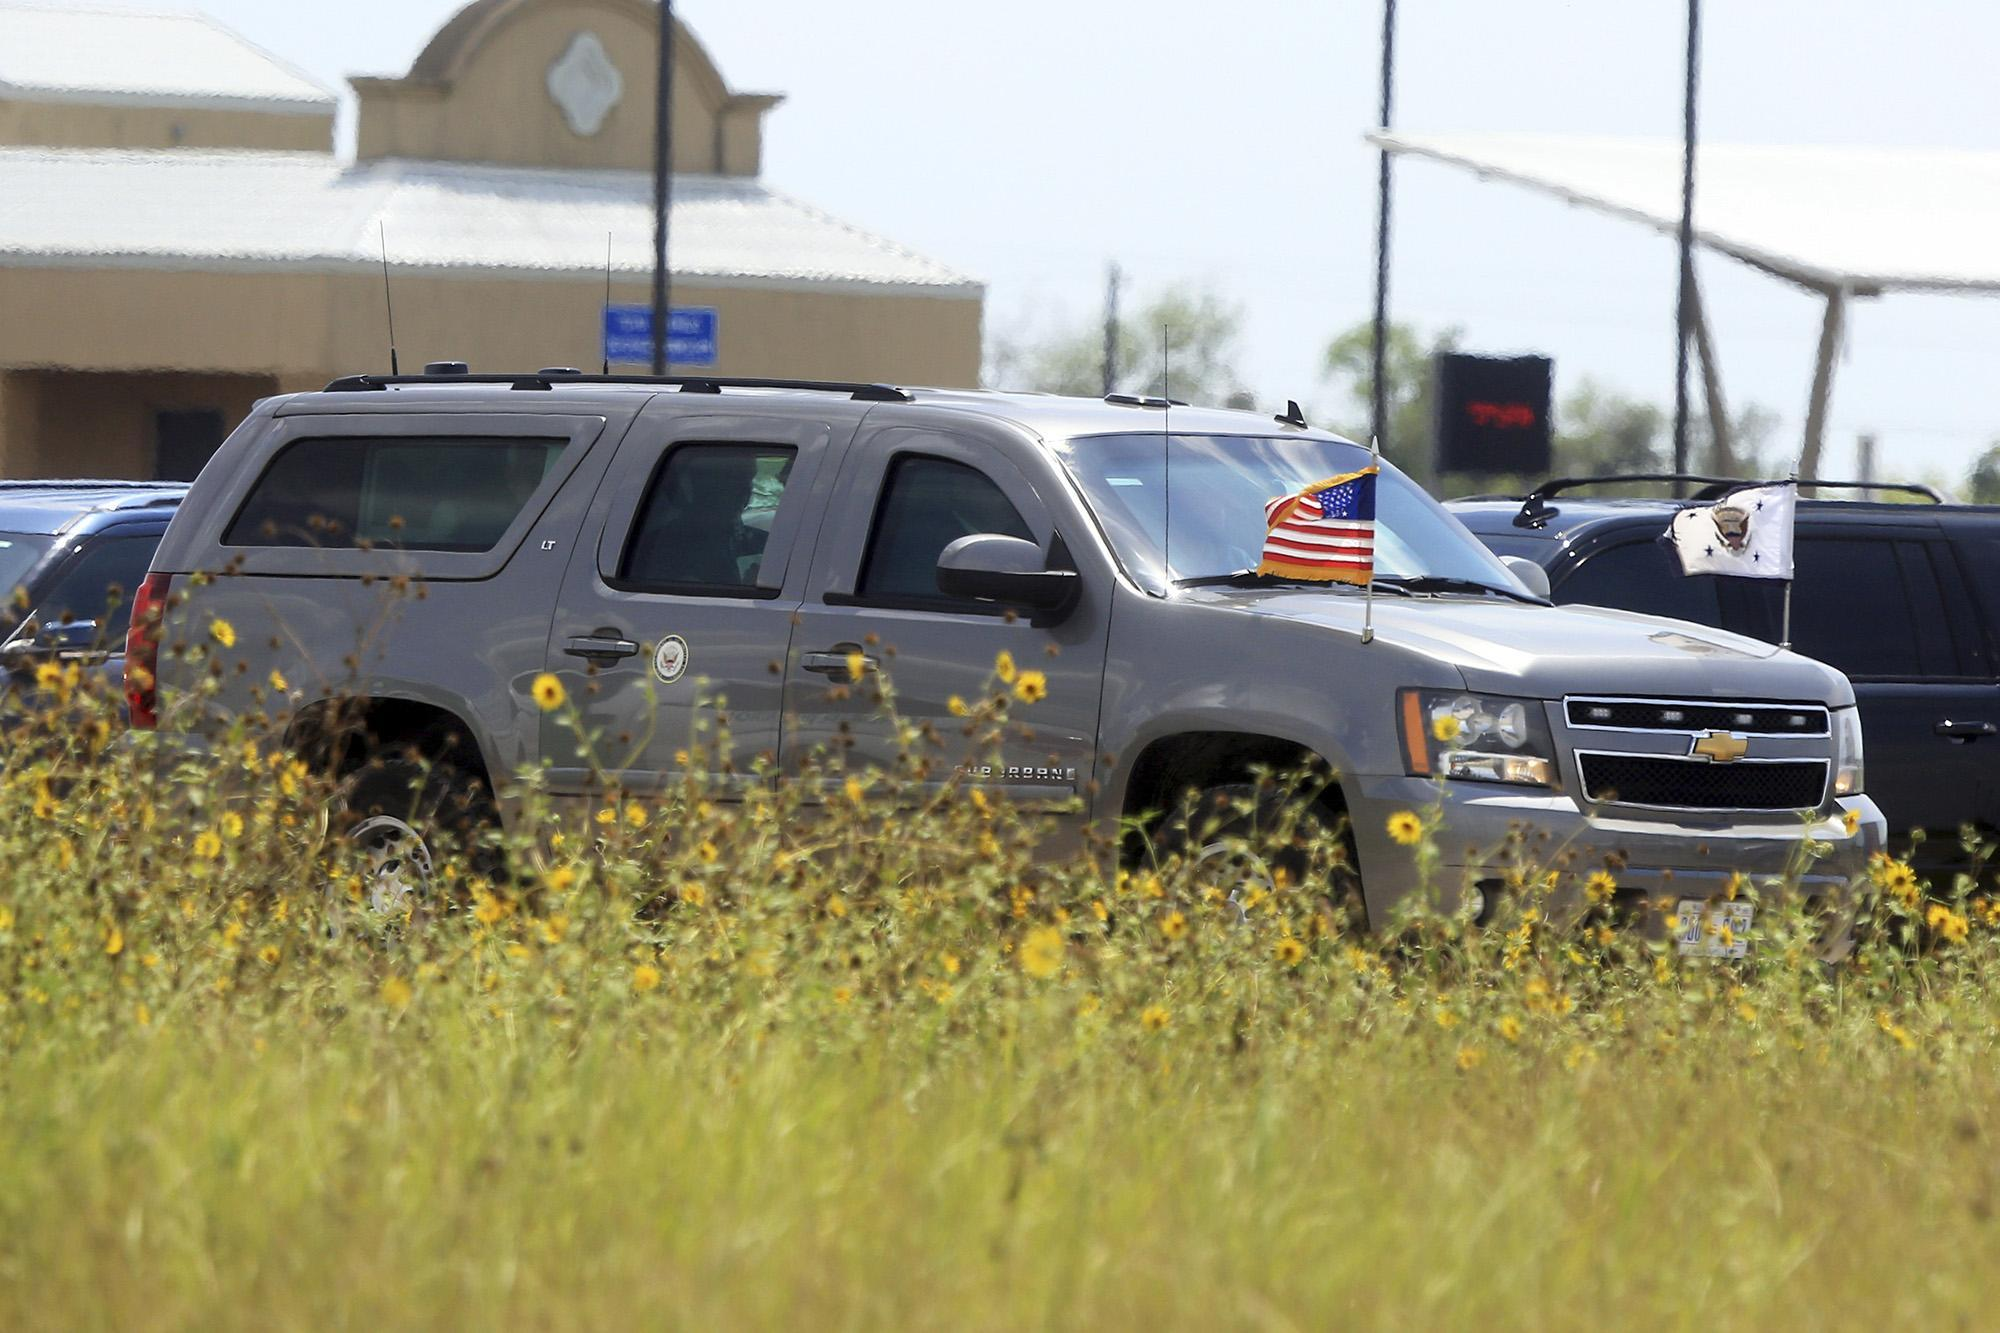 An SUV carrying Vice President Mike Pence leaves a migrant detention facility Friday in Donna, Texas.